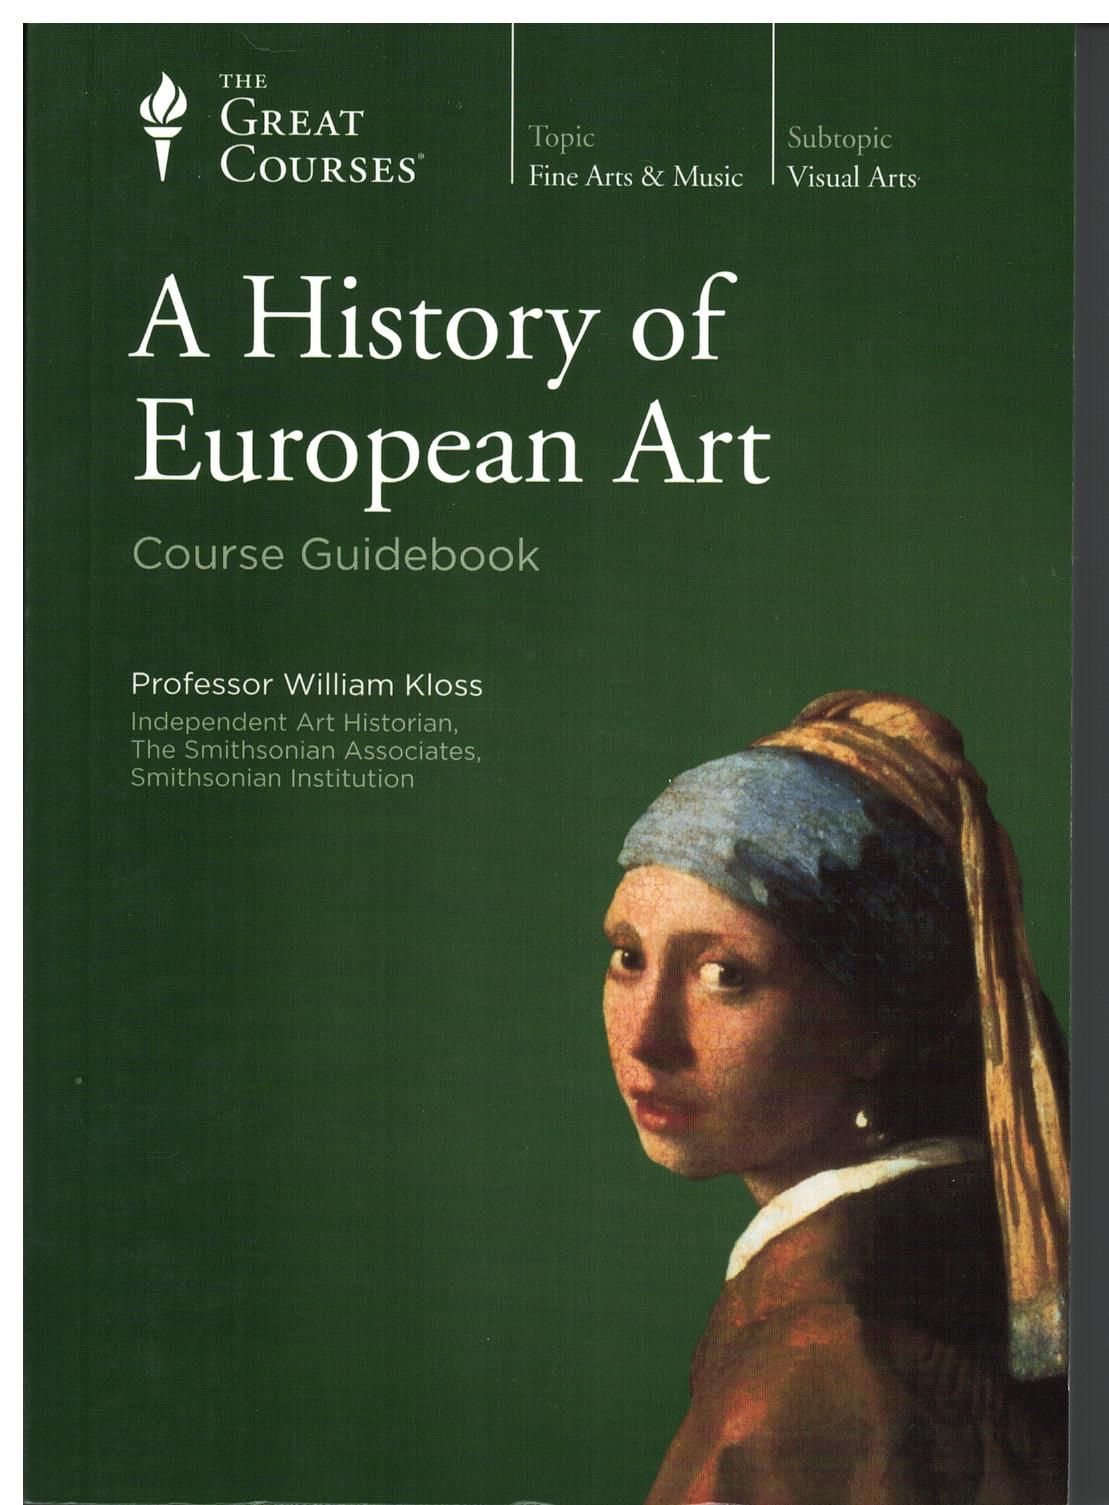 Image for A History of European Art - Course Guidebook